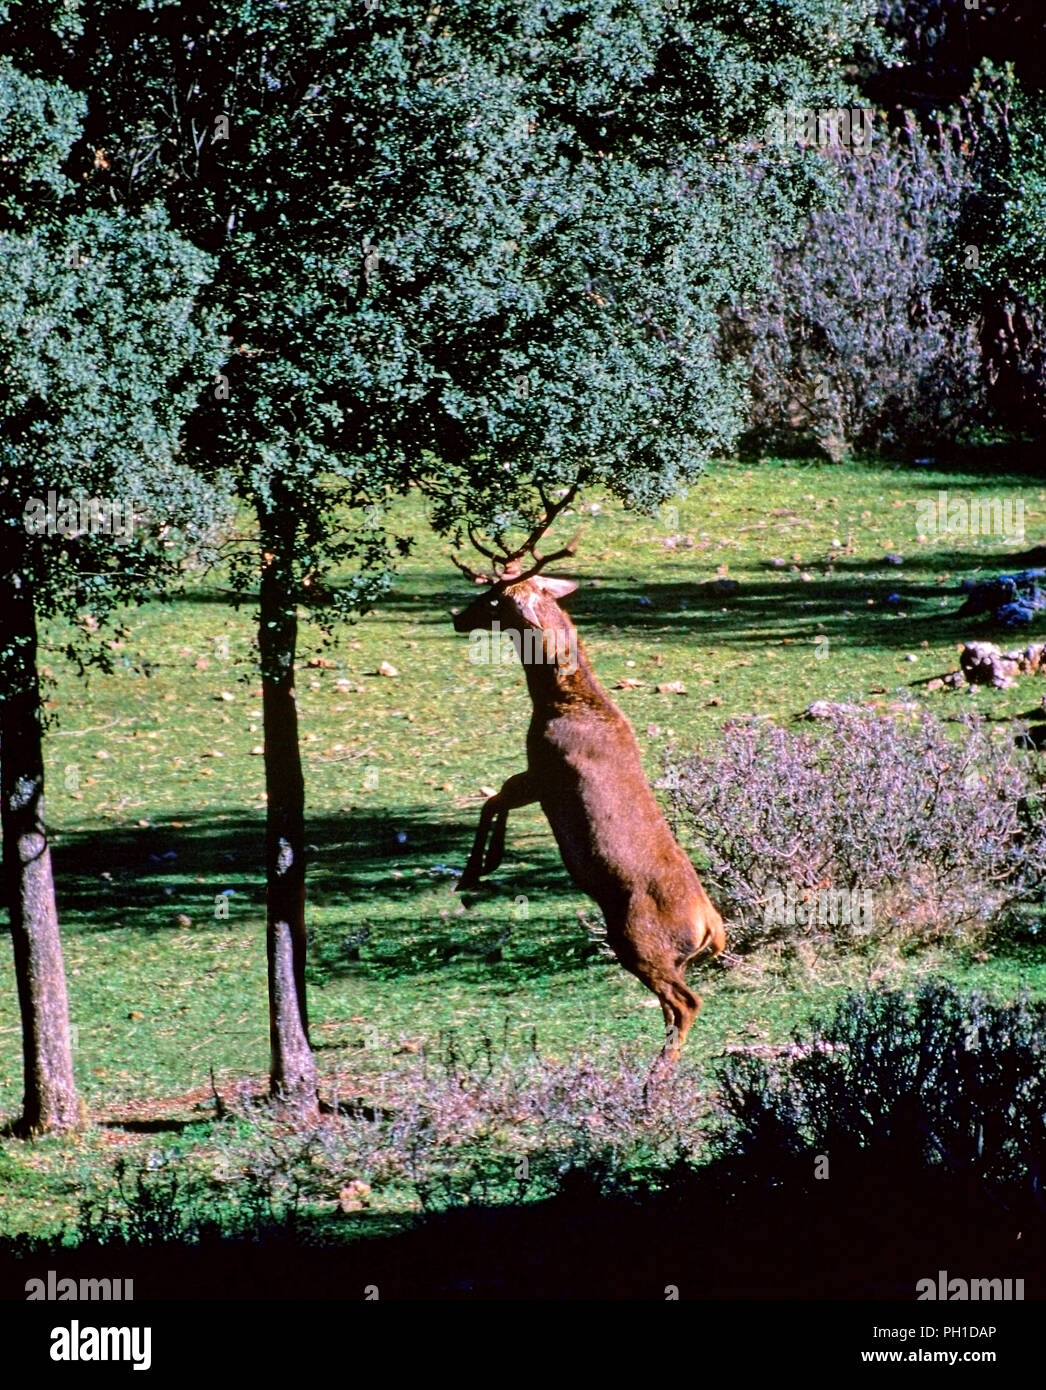 A Red deer hits an holm oak with the horns to get acorns. Sierras de Cazorla, Segura y Las Villas Natural Park. Jaen province. Region of Andalusia. Sp - Stock Image